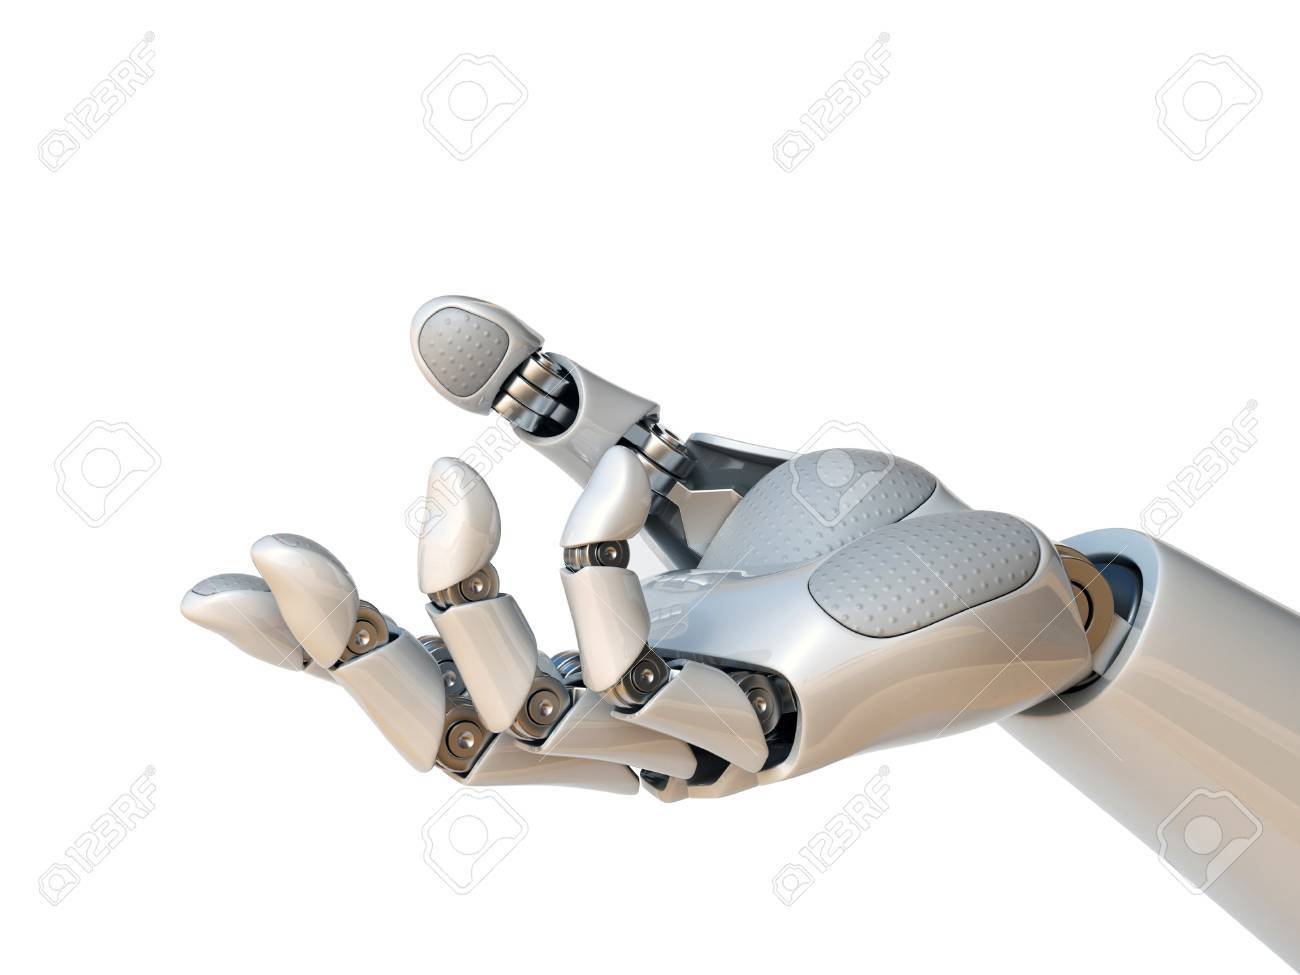 Robot hand reaching gesture or holding object 3d rendering - 88979881